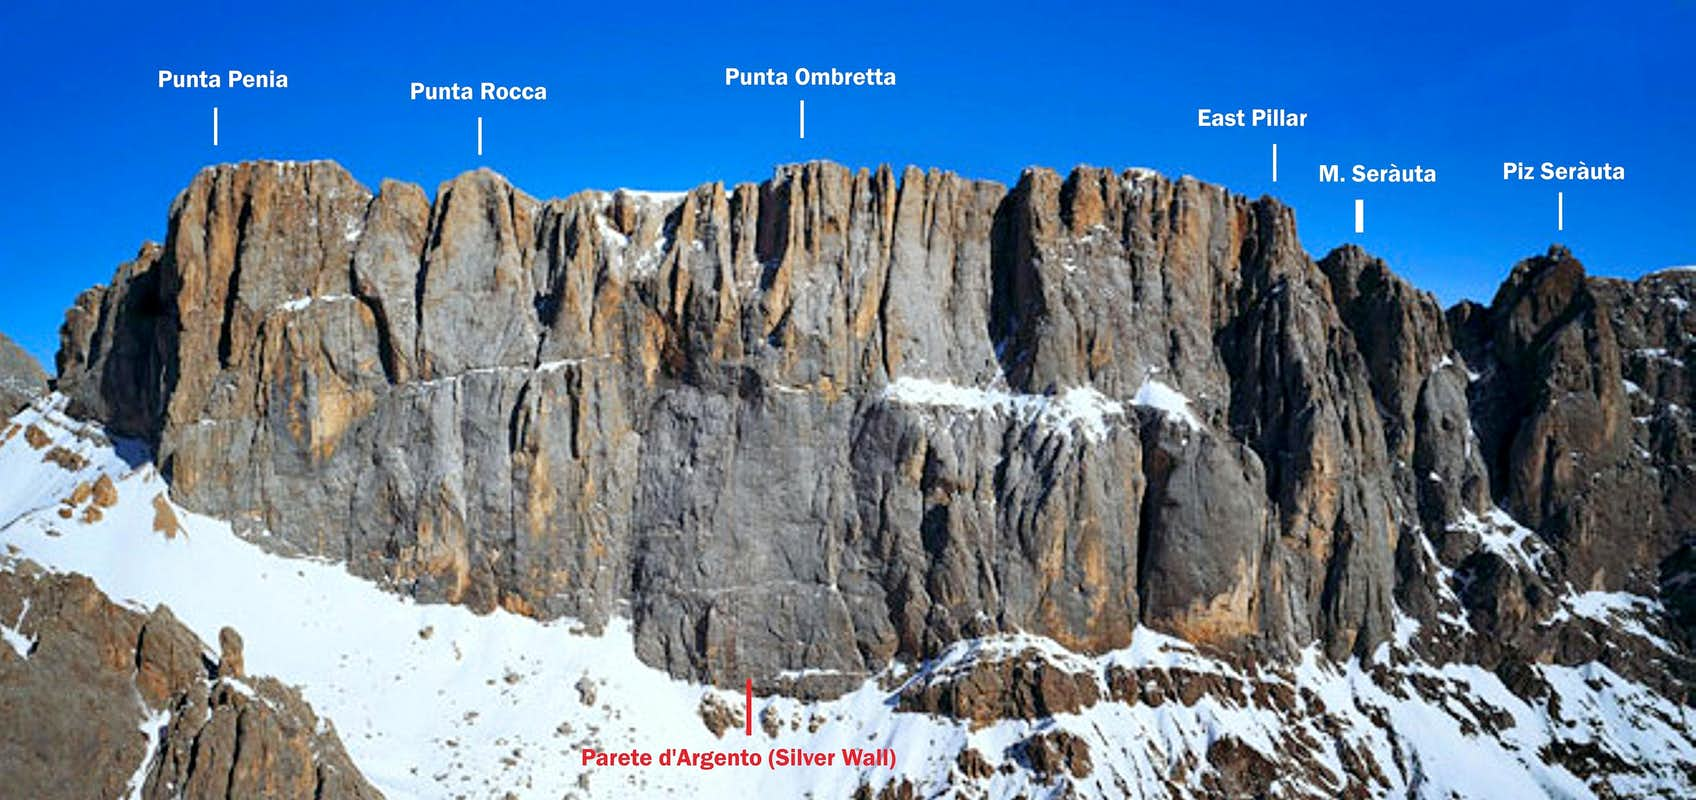 italy mountains map with 963711 on Eurovelo 7 as well Pic Geislergruppe Odle Seceda Dolomites 1 together with Lake Garda besides Old Latium together with The Area.